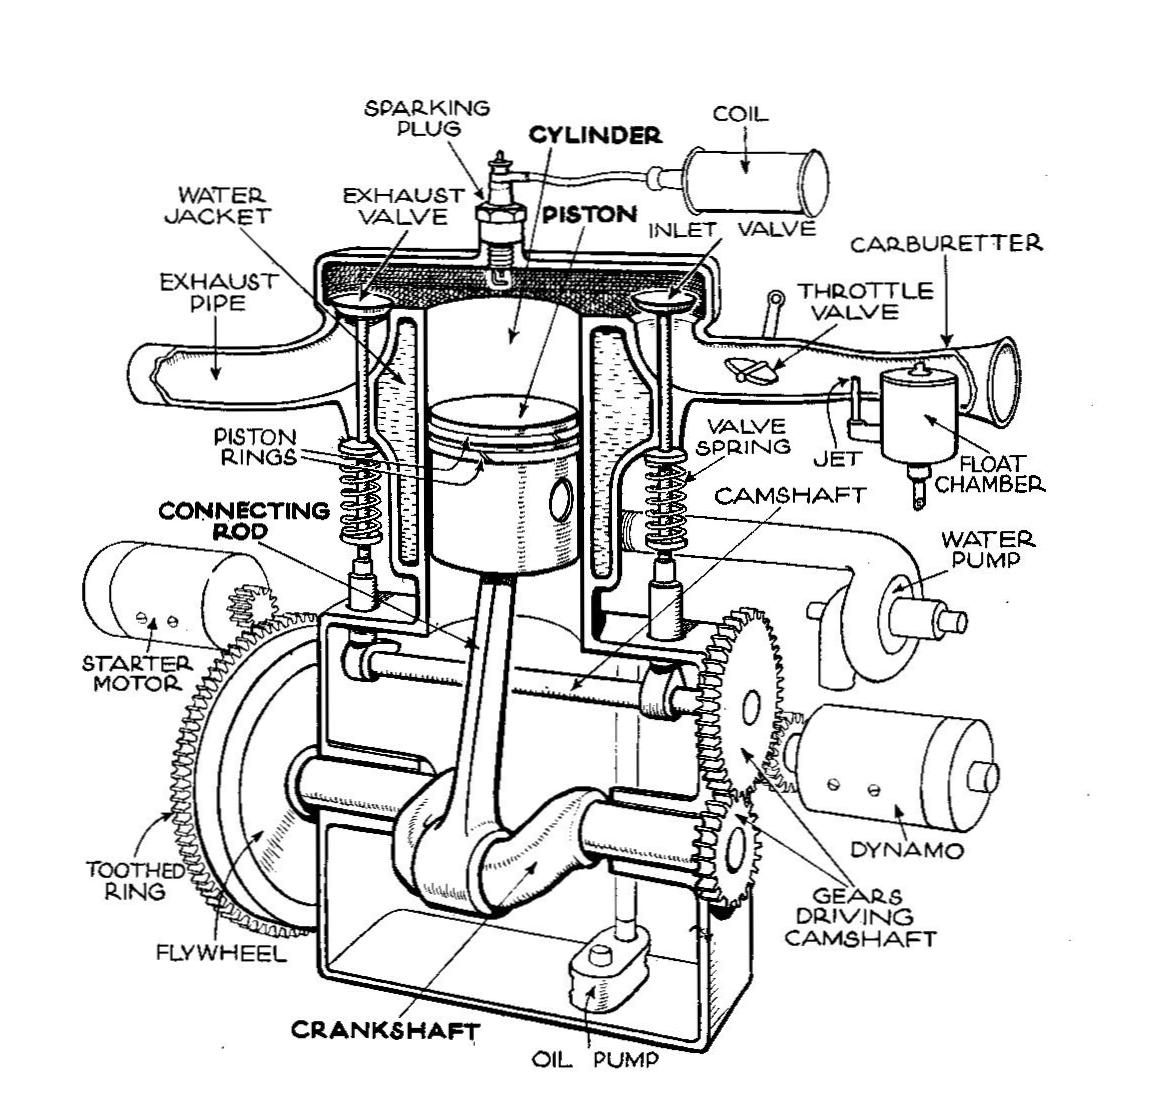 flathead engine wikipedia4 Cylinder 2 4 Engine Diagram #13